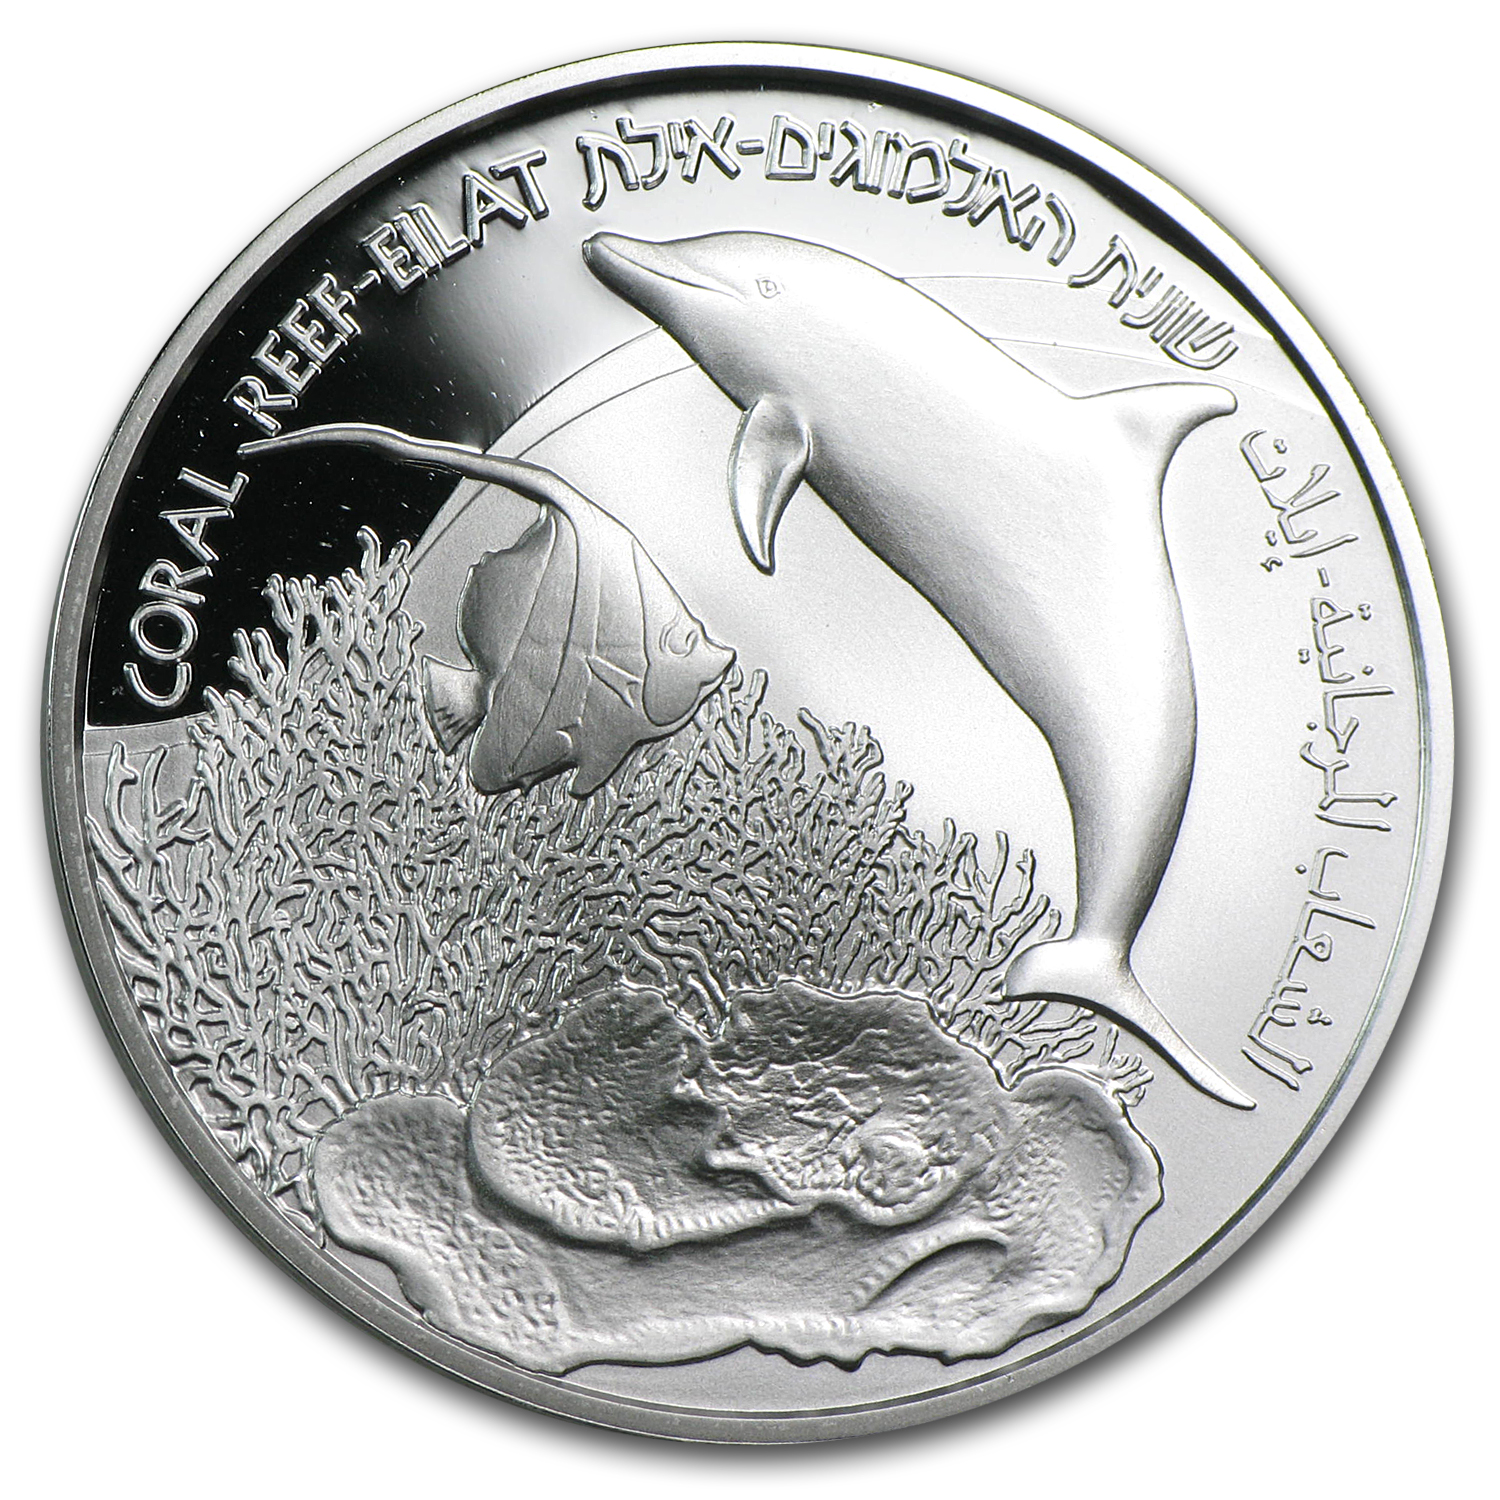 2012 Israel Coral Reef, Eilat Silver 1 NIS Proof-Like